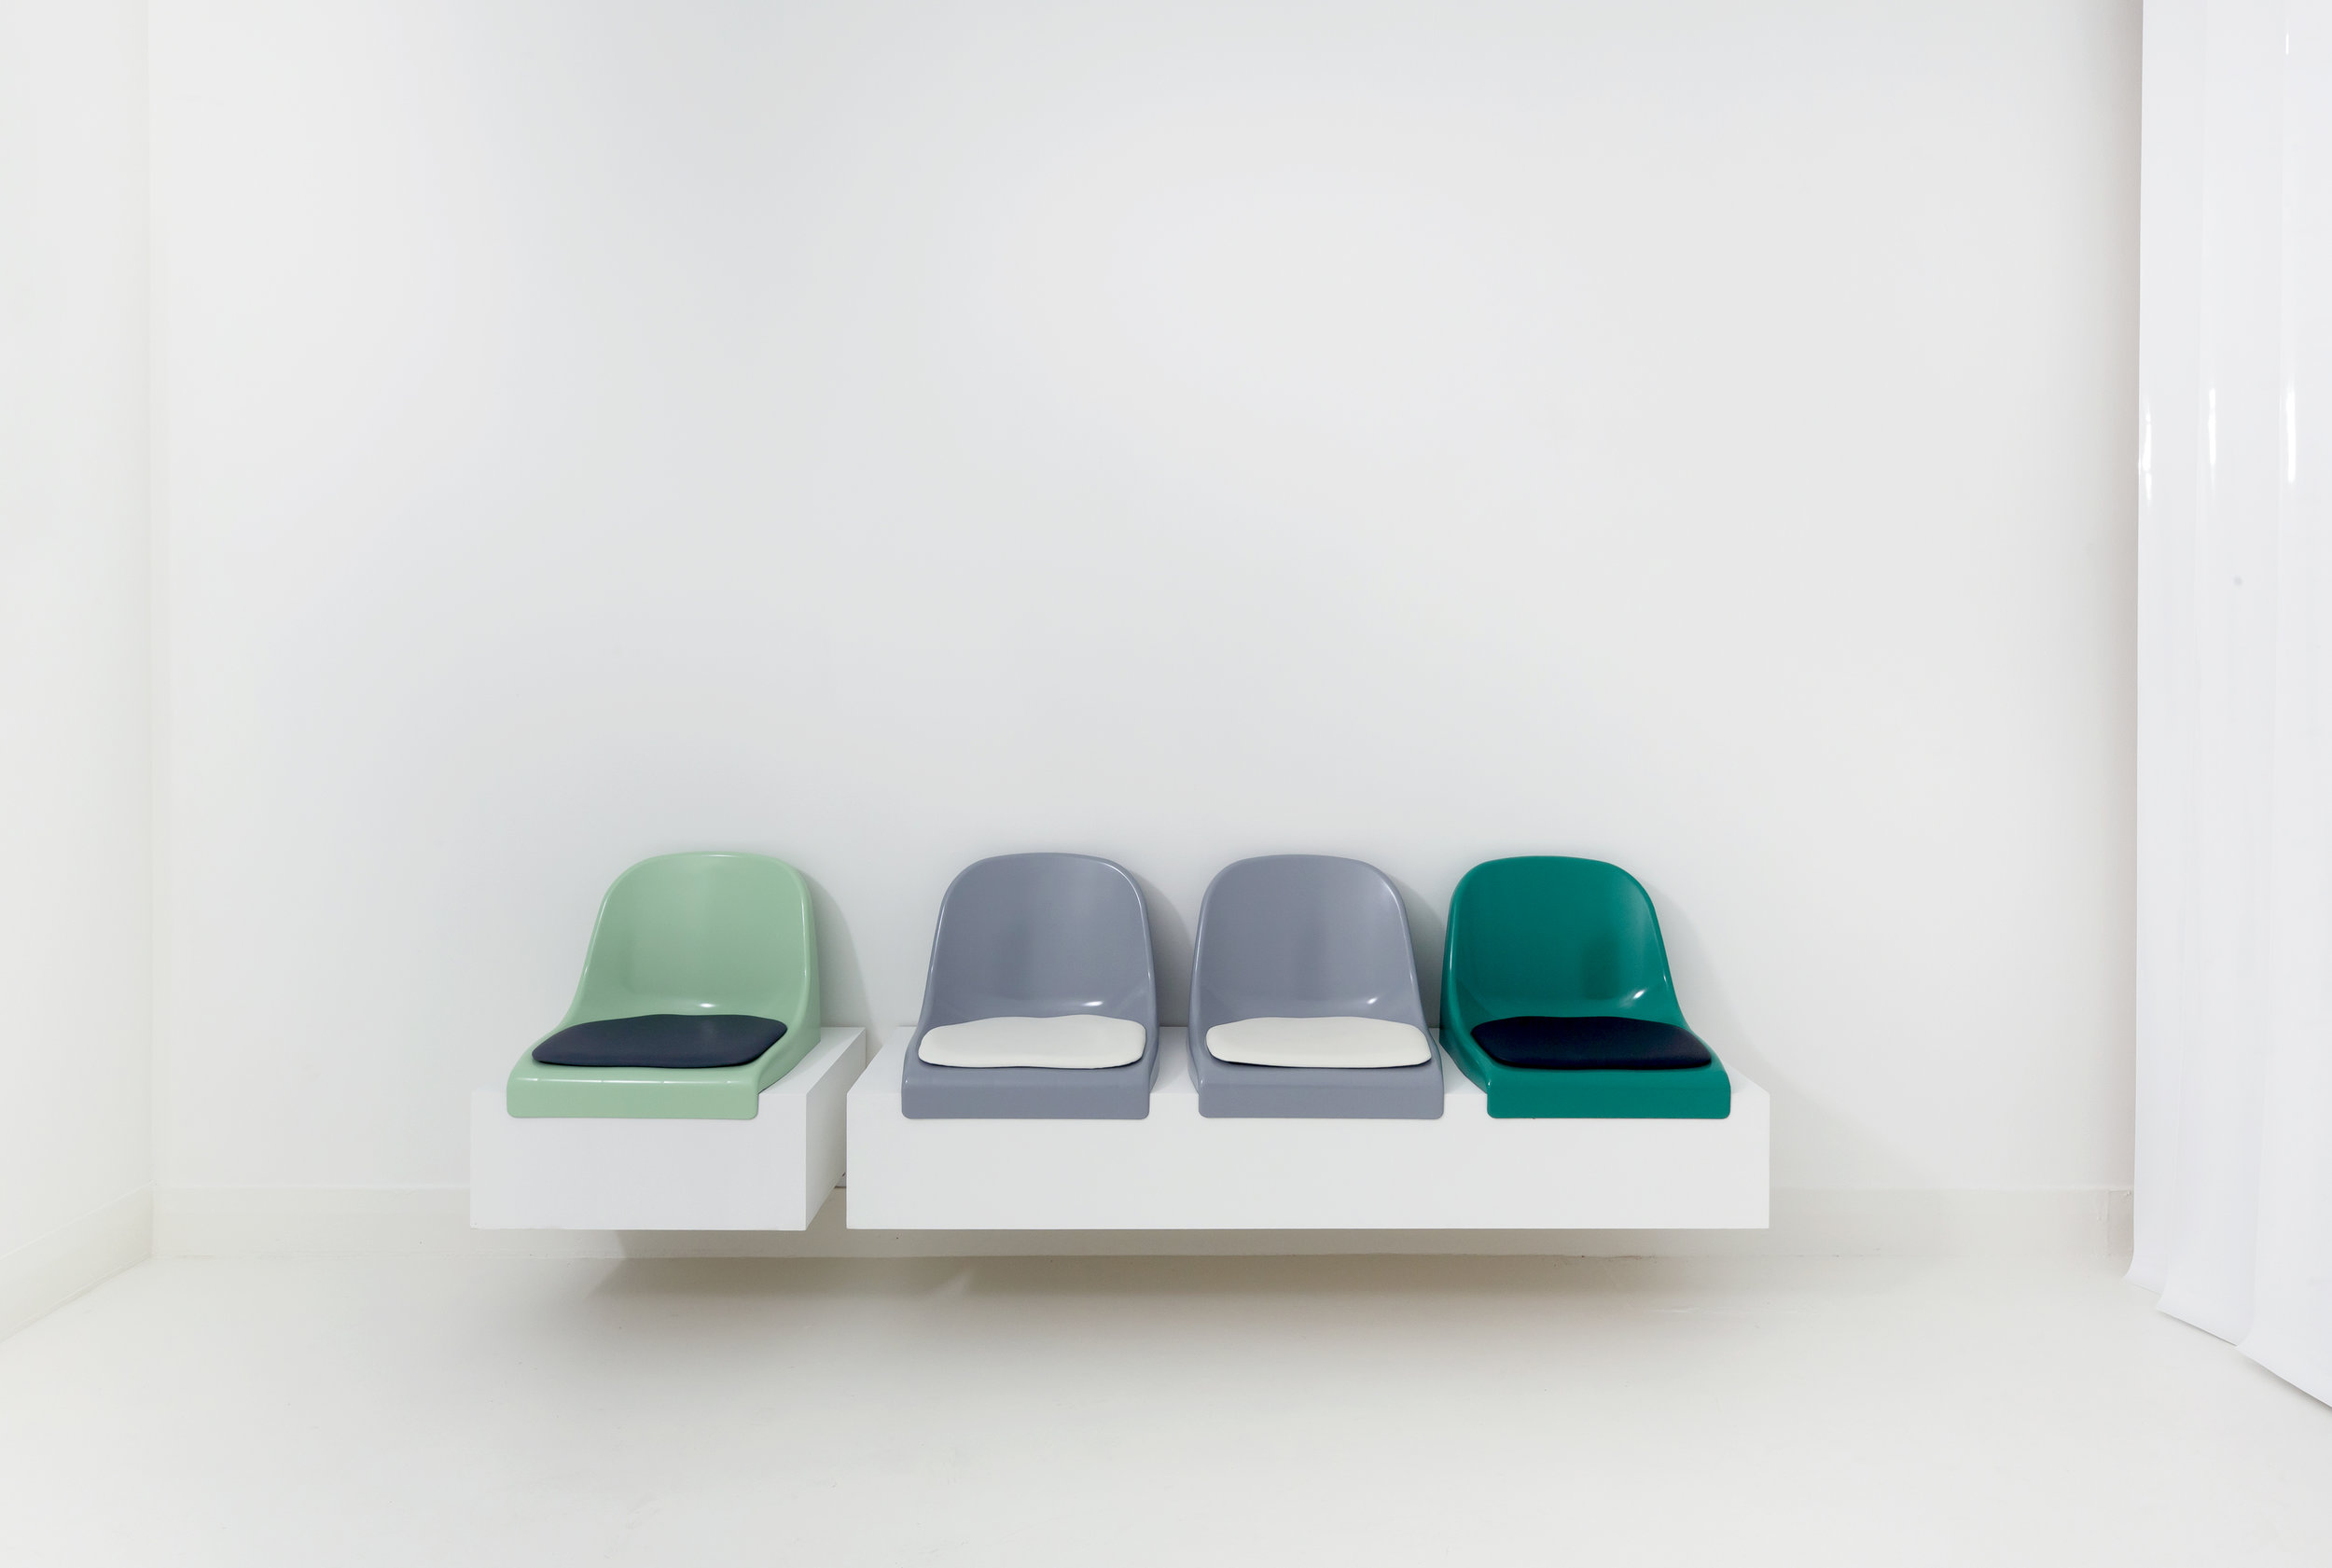 MULTIFAITH  (Service Station), 2018 Polyurethane chairs, leatherette, neon light, perspex, c-type print Dimensions variable